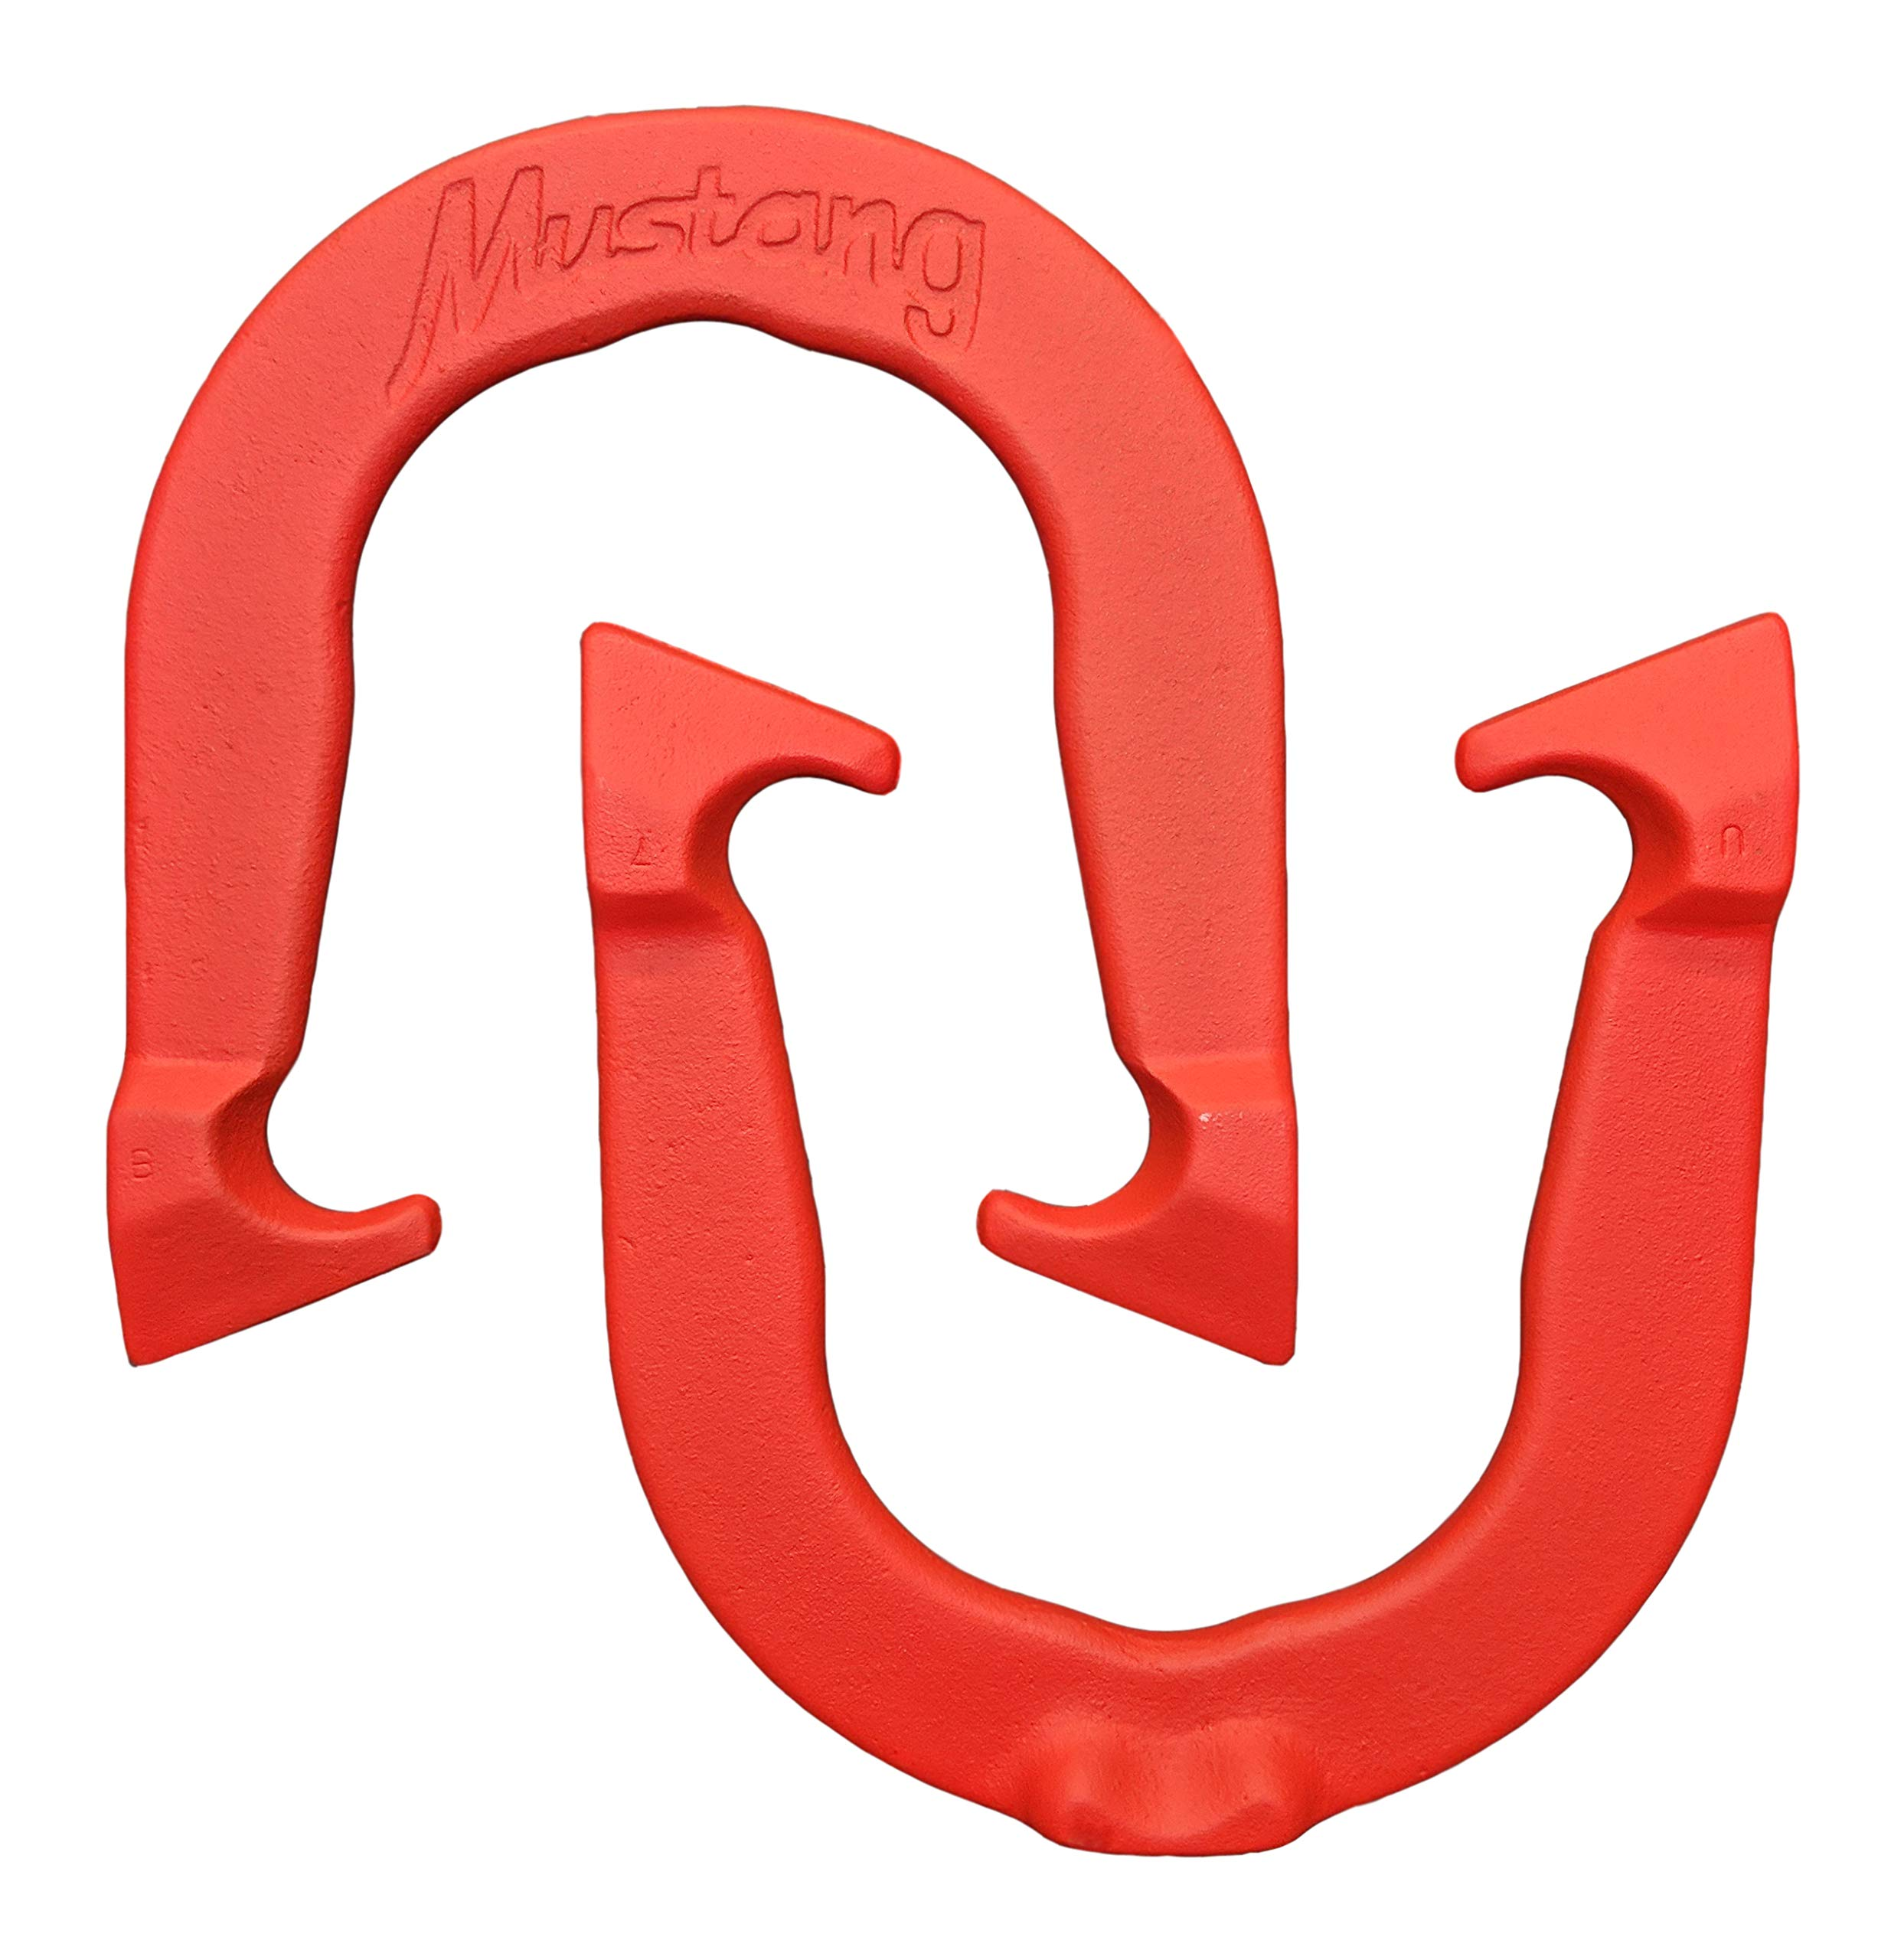 Mustang Professional Pitching Horseshoes- Made in USA (Red- Single Pair (2 Shoes)) by Thoroughbred Horseshoes